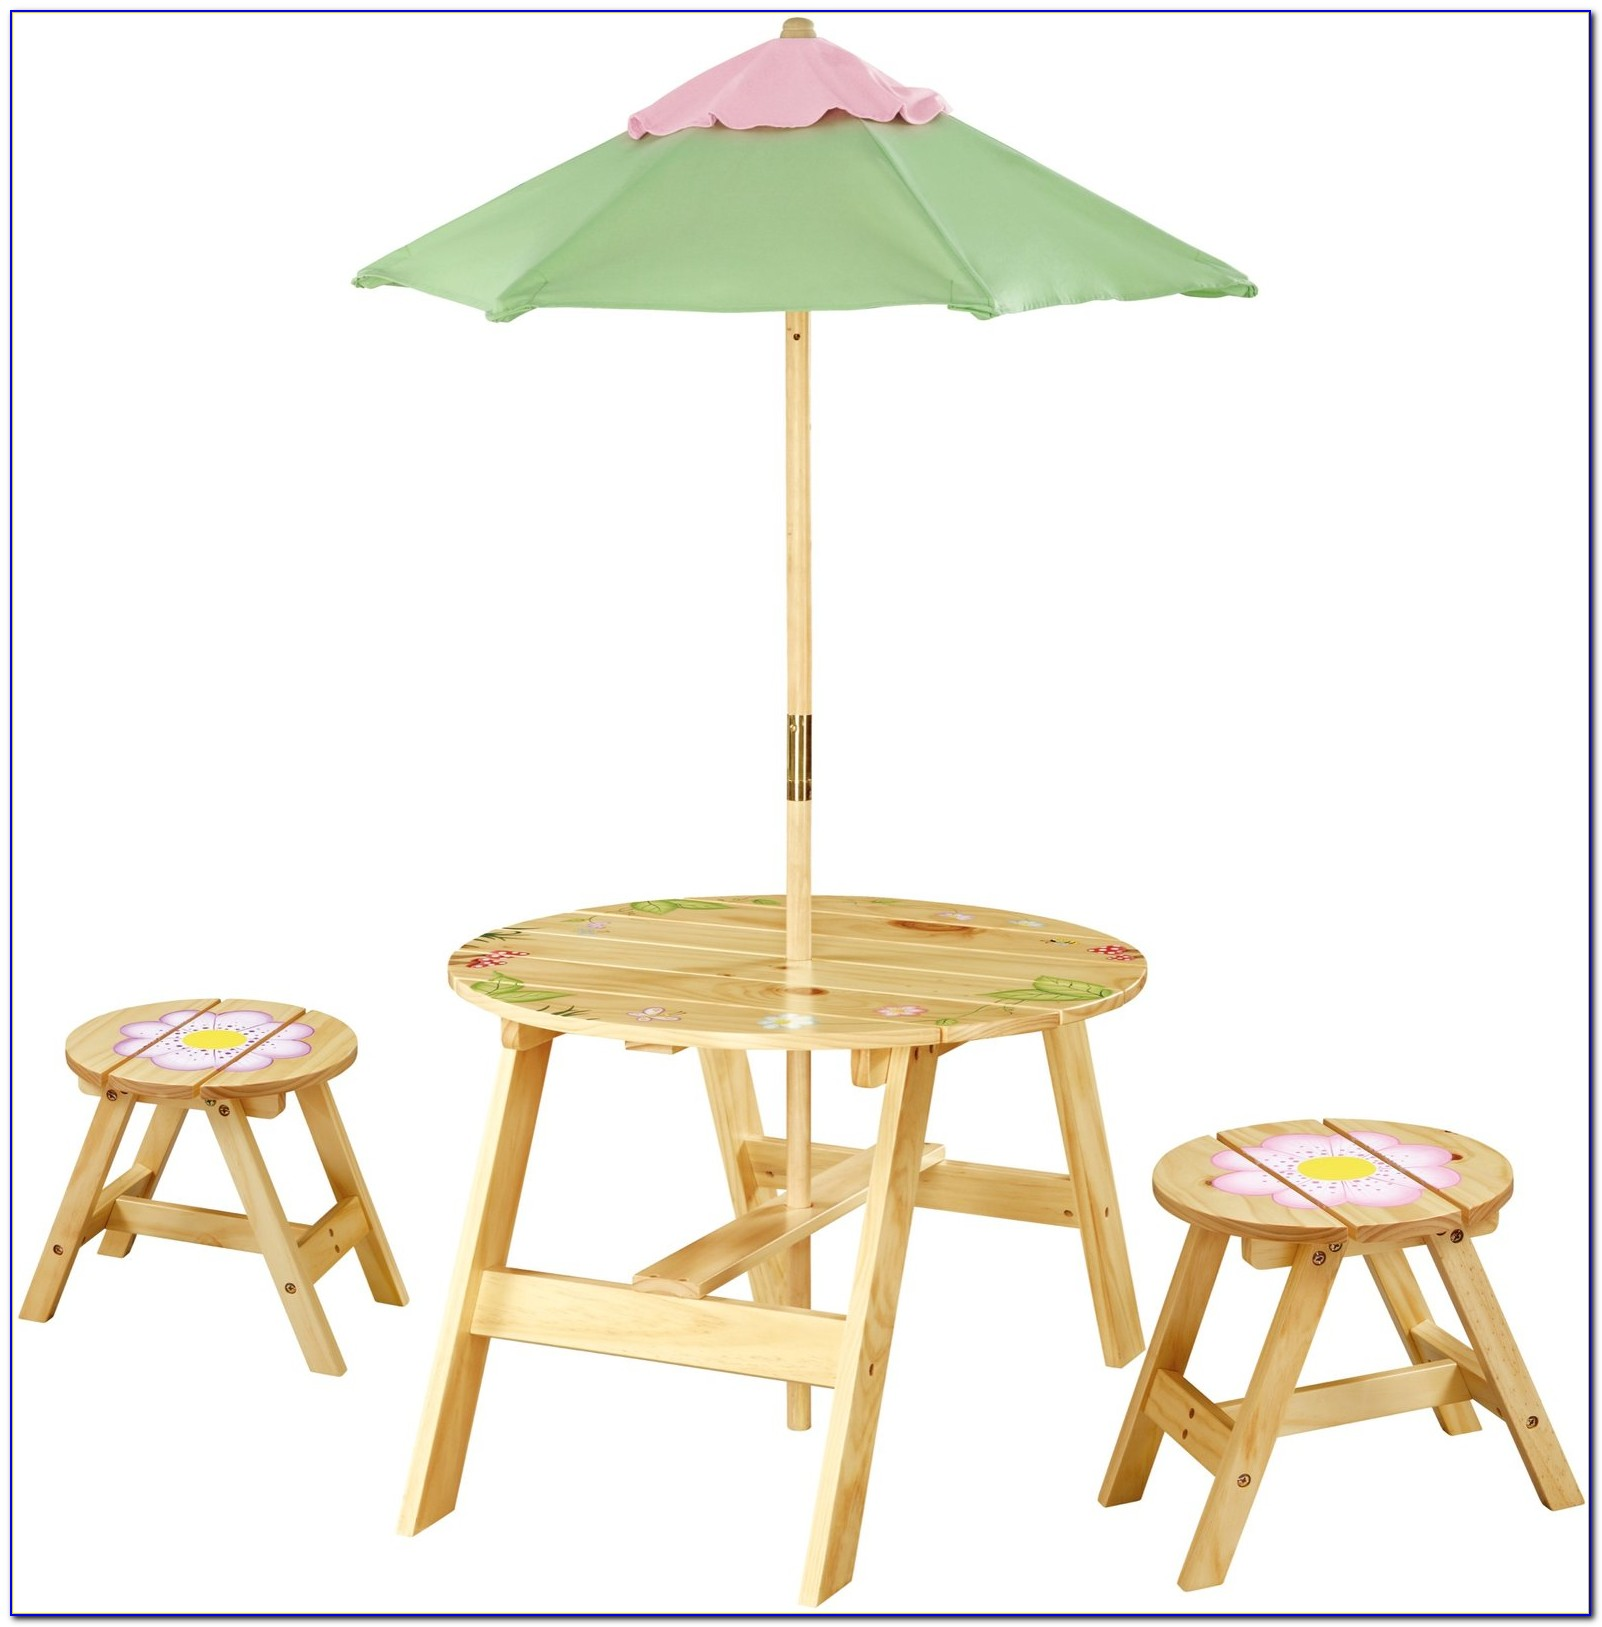 Children's Outdoor Table And Chairs With Umbrella